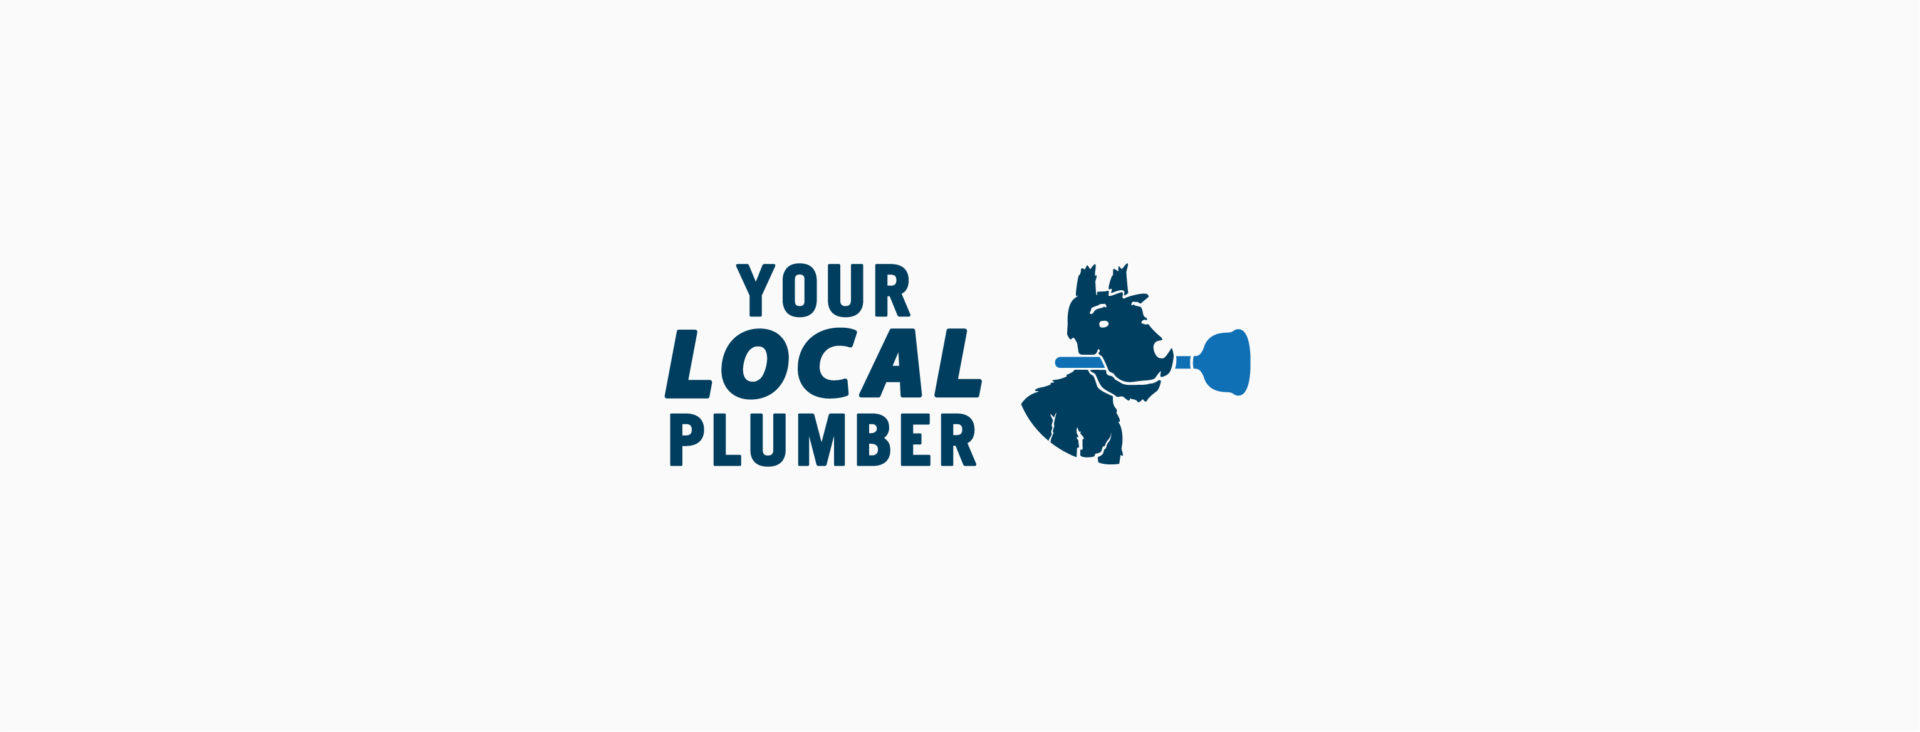 your-local-plumber-logo